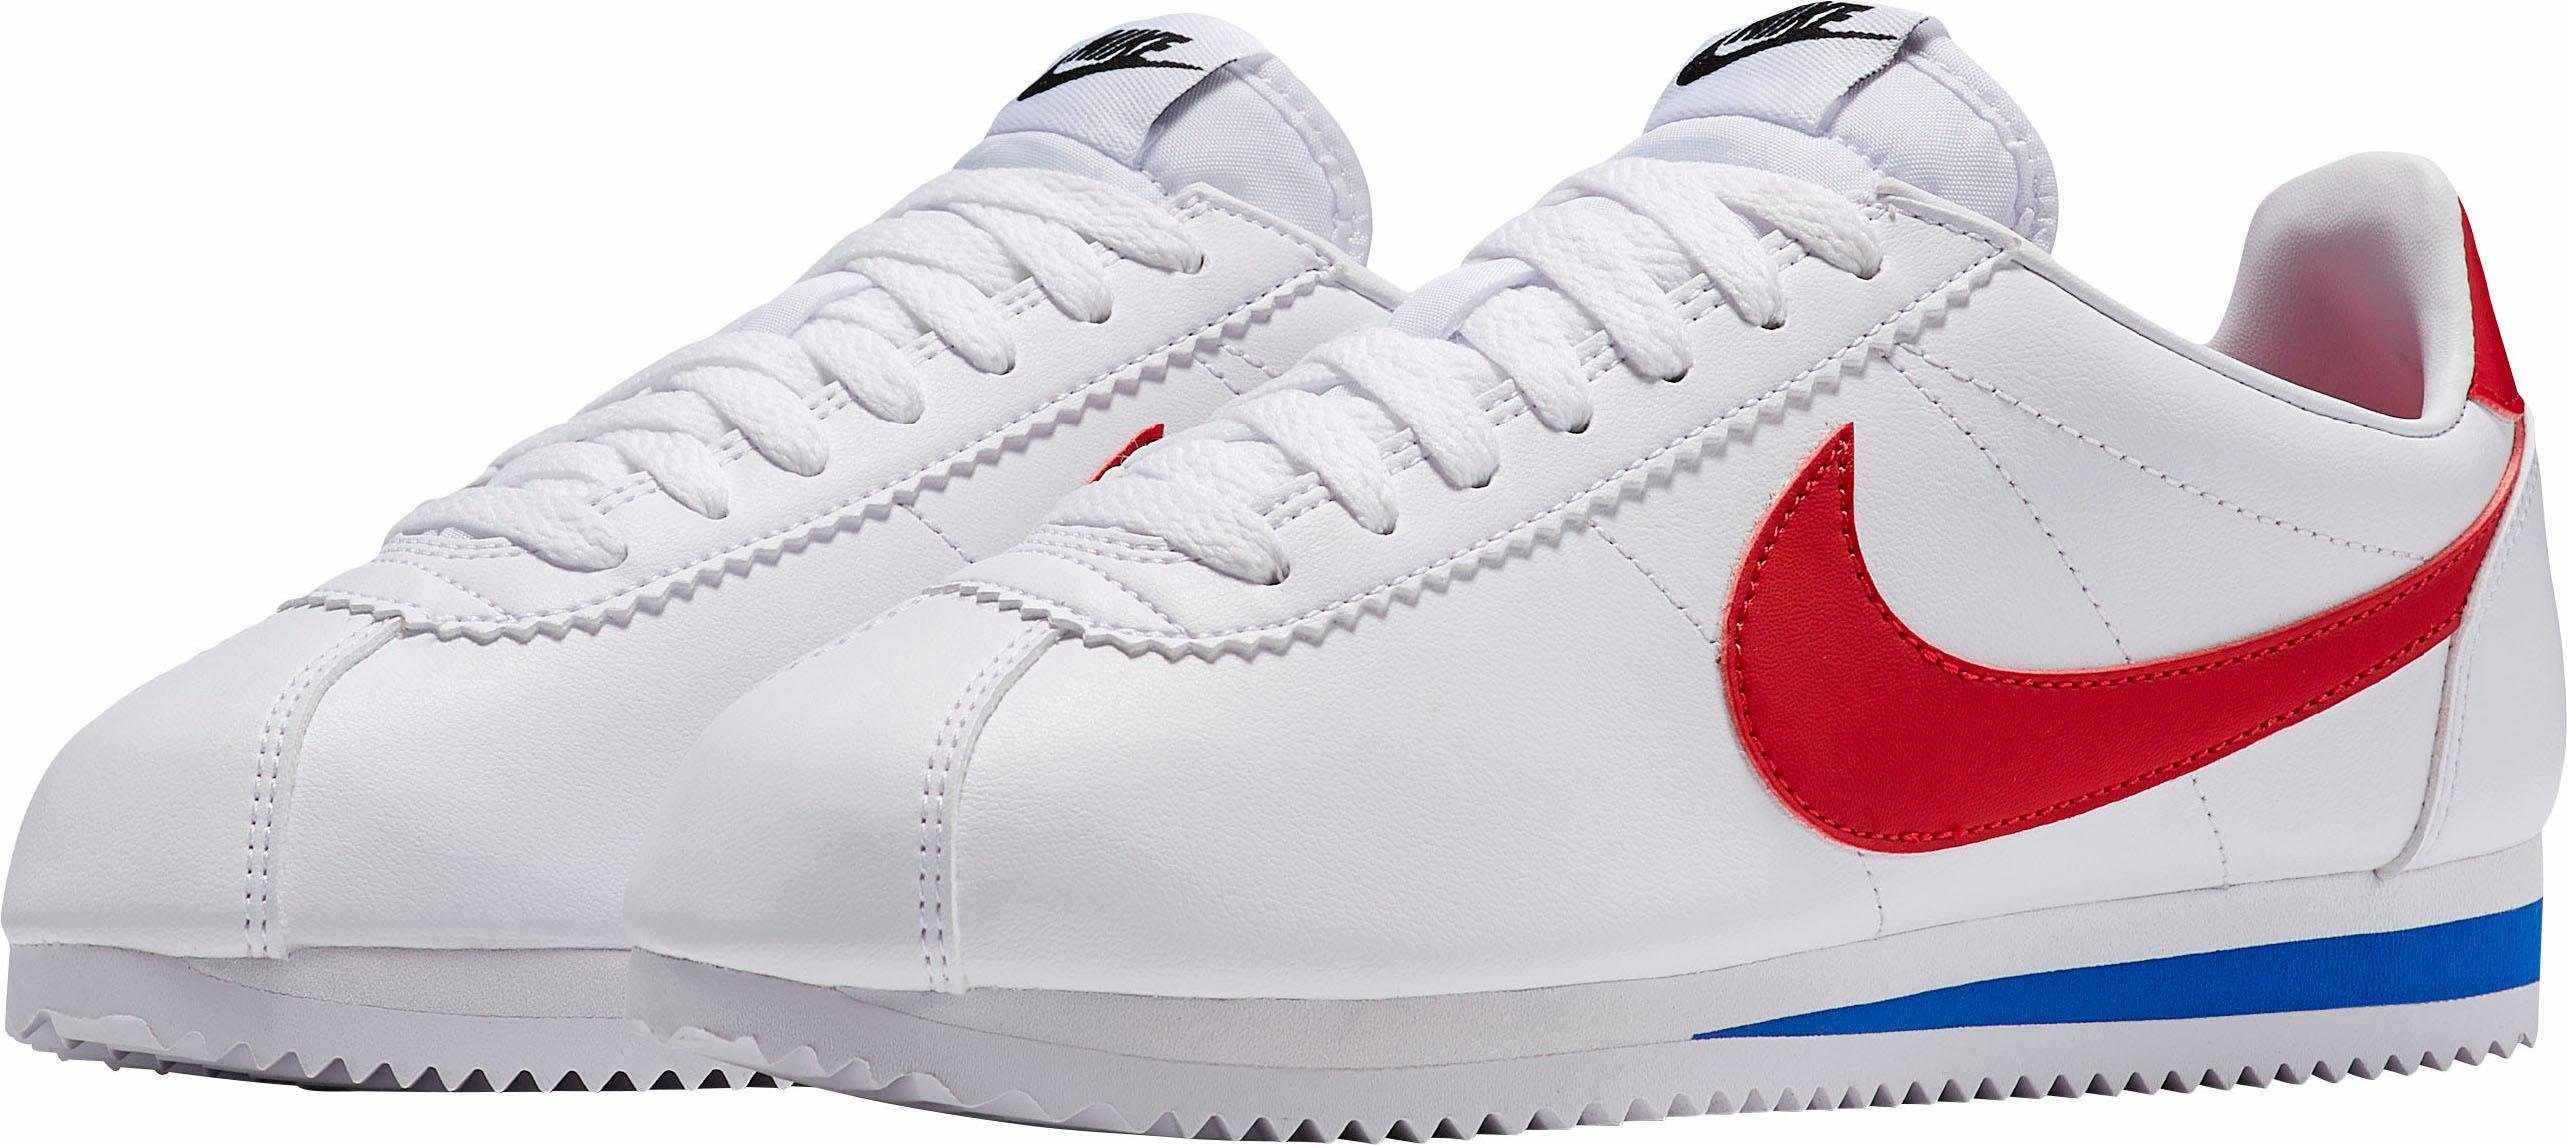 Weiße Nike Sneaker Classic Cortez Leather Wmns M1S1k